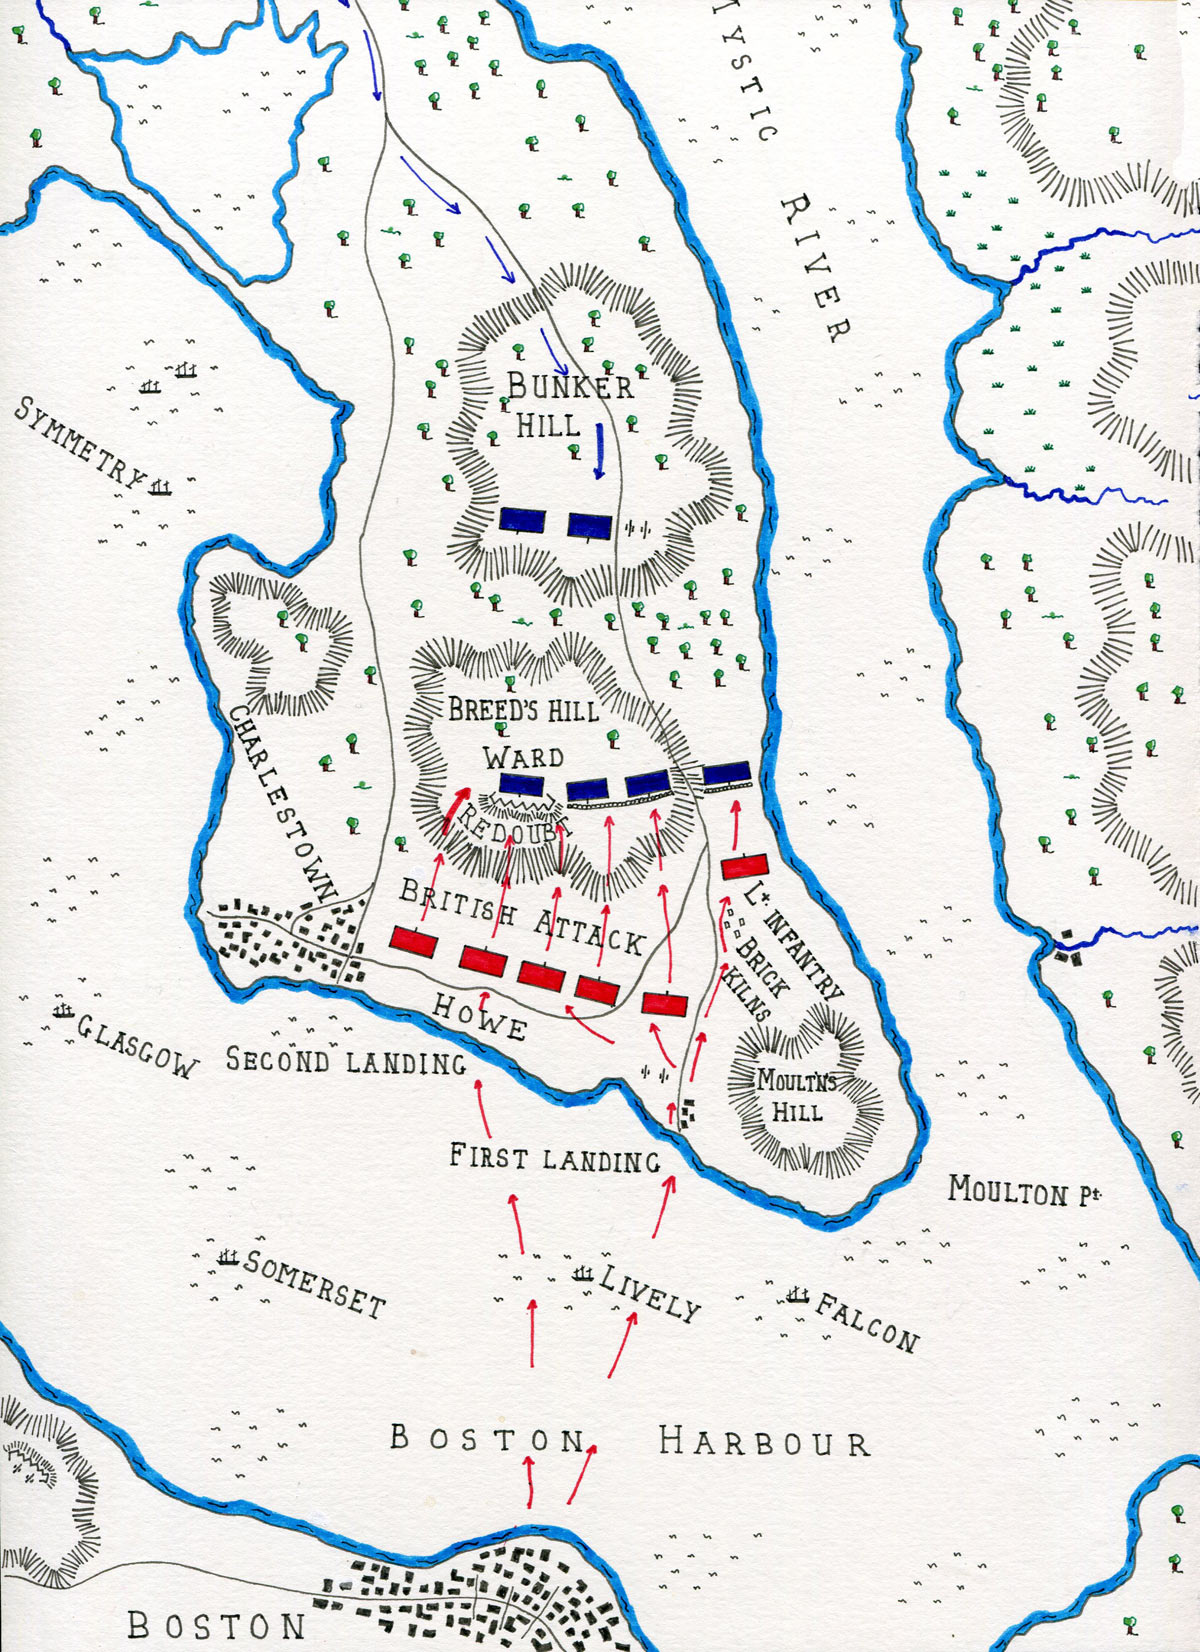 Map Of The Battle Of Bunker Hill On 17th June 1775 In The American Revolutionary War